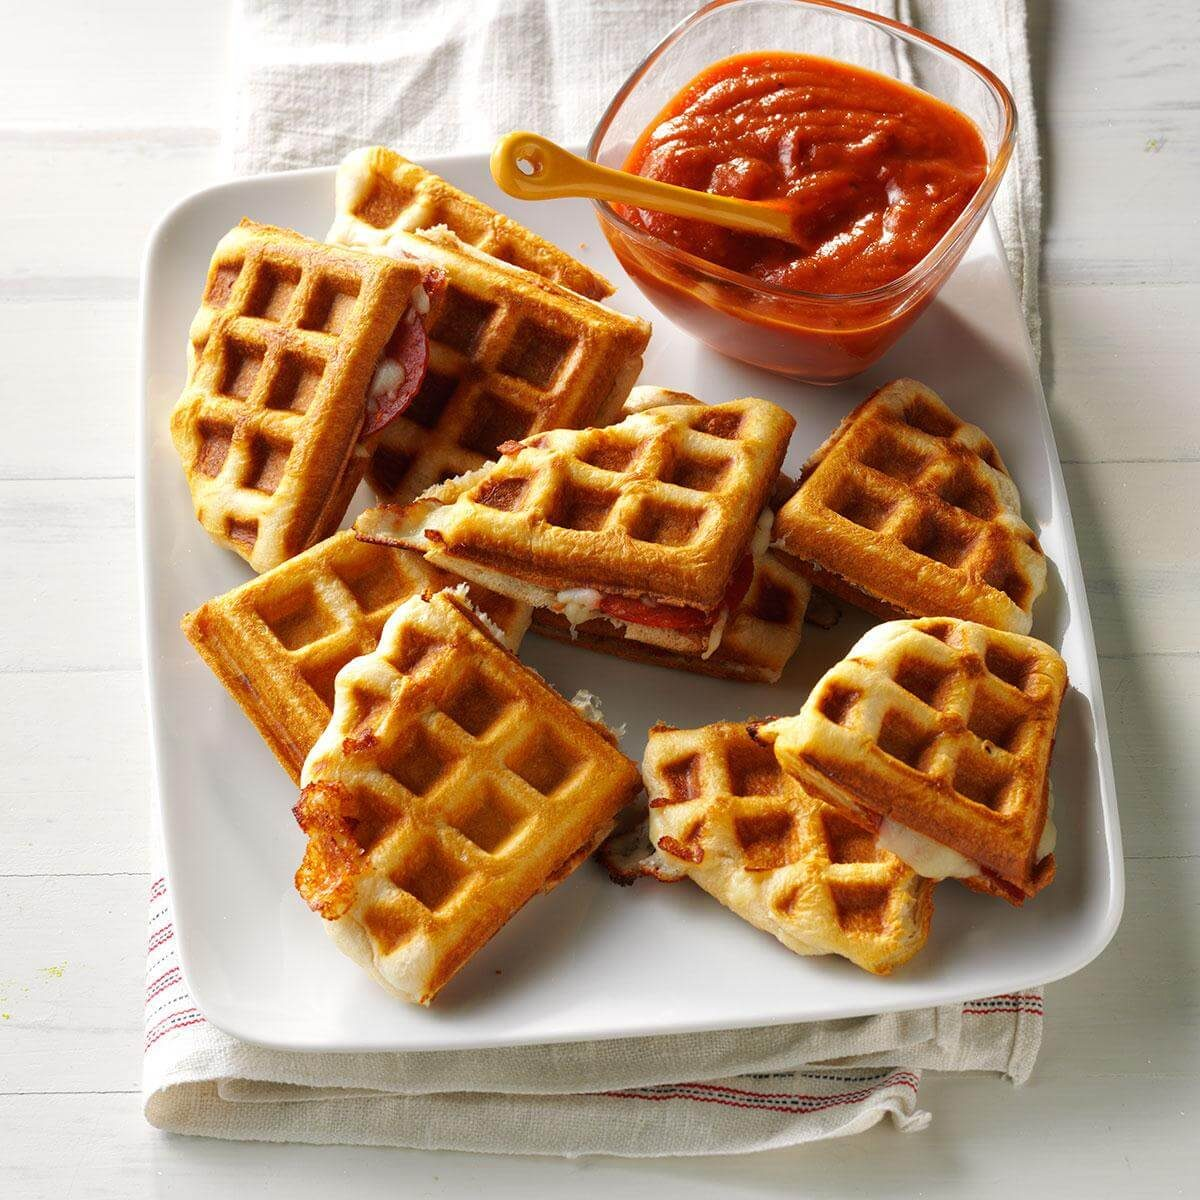 Please tell me the simplest recipe for waffle irons